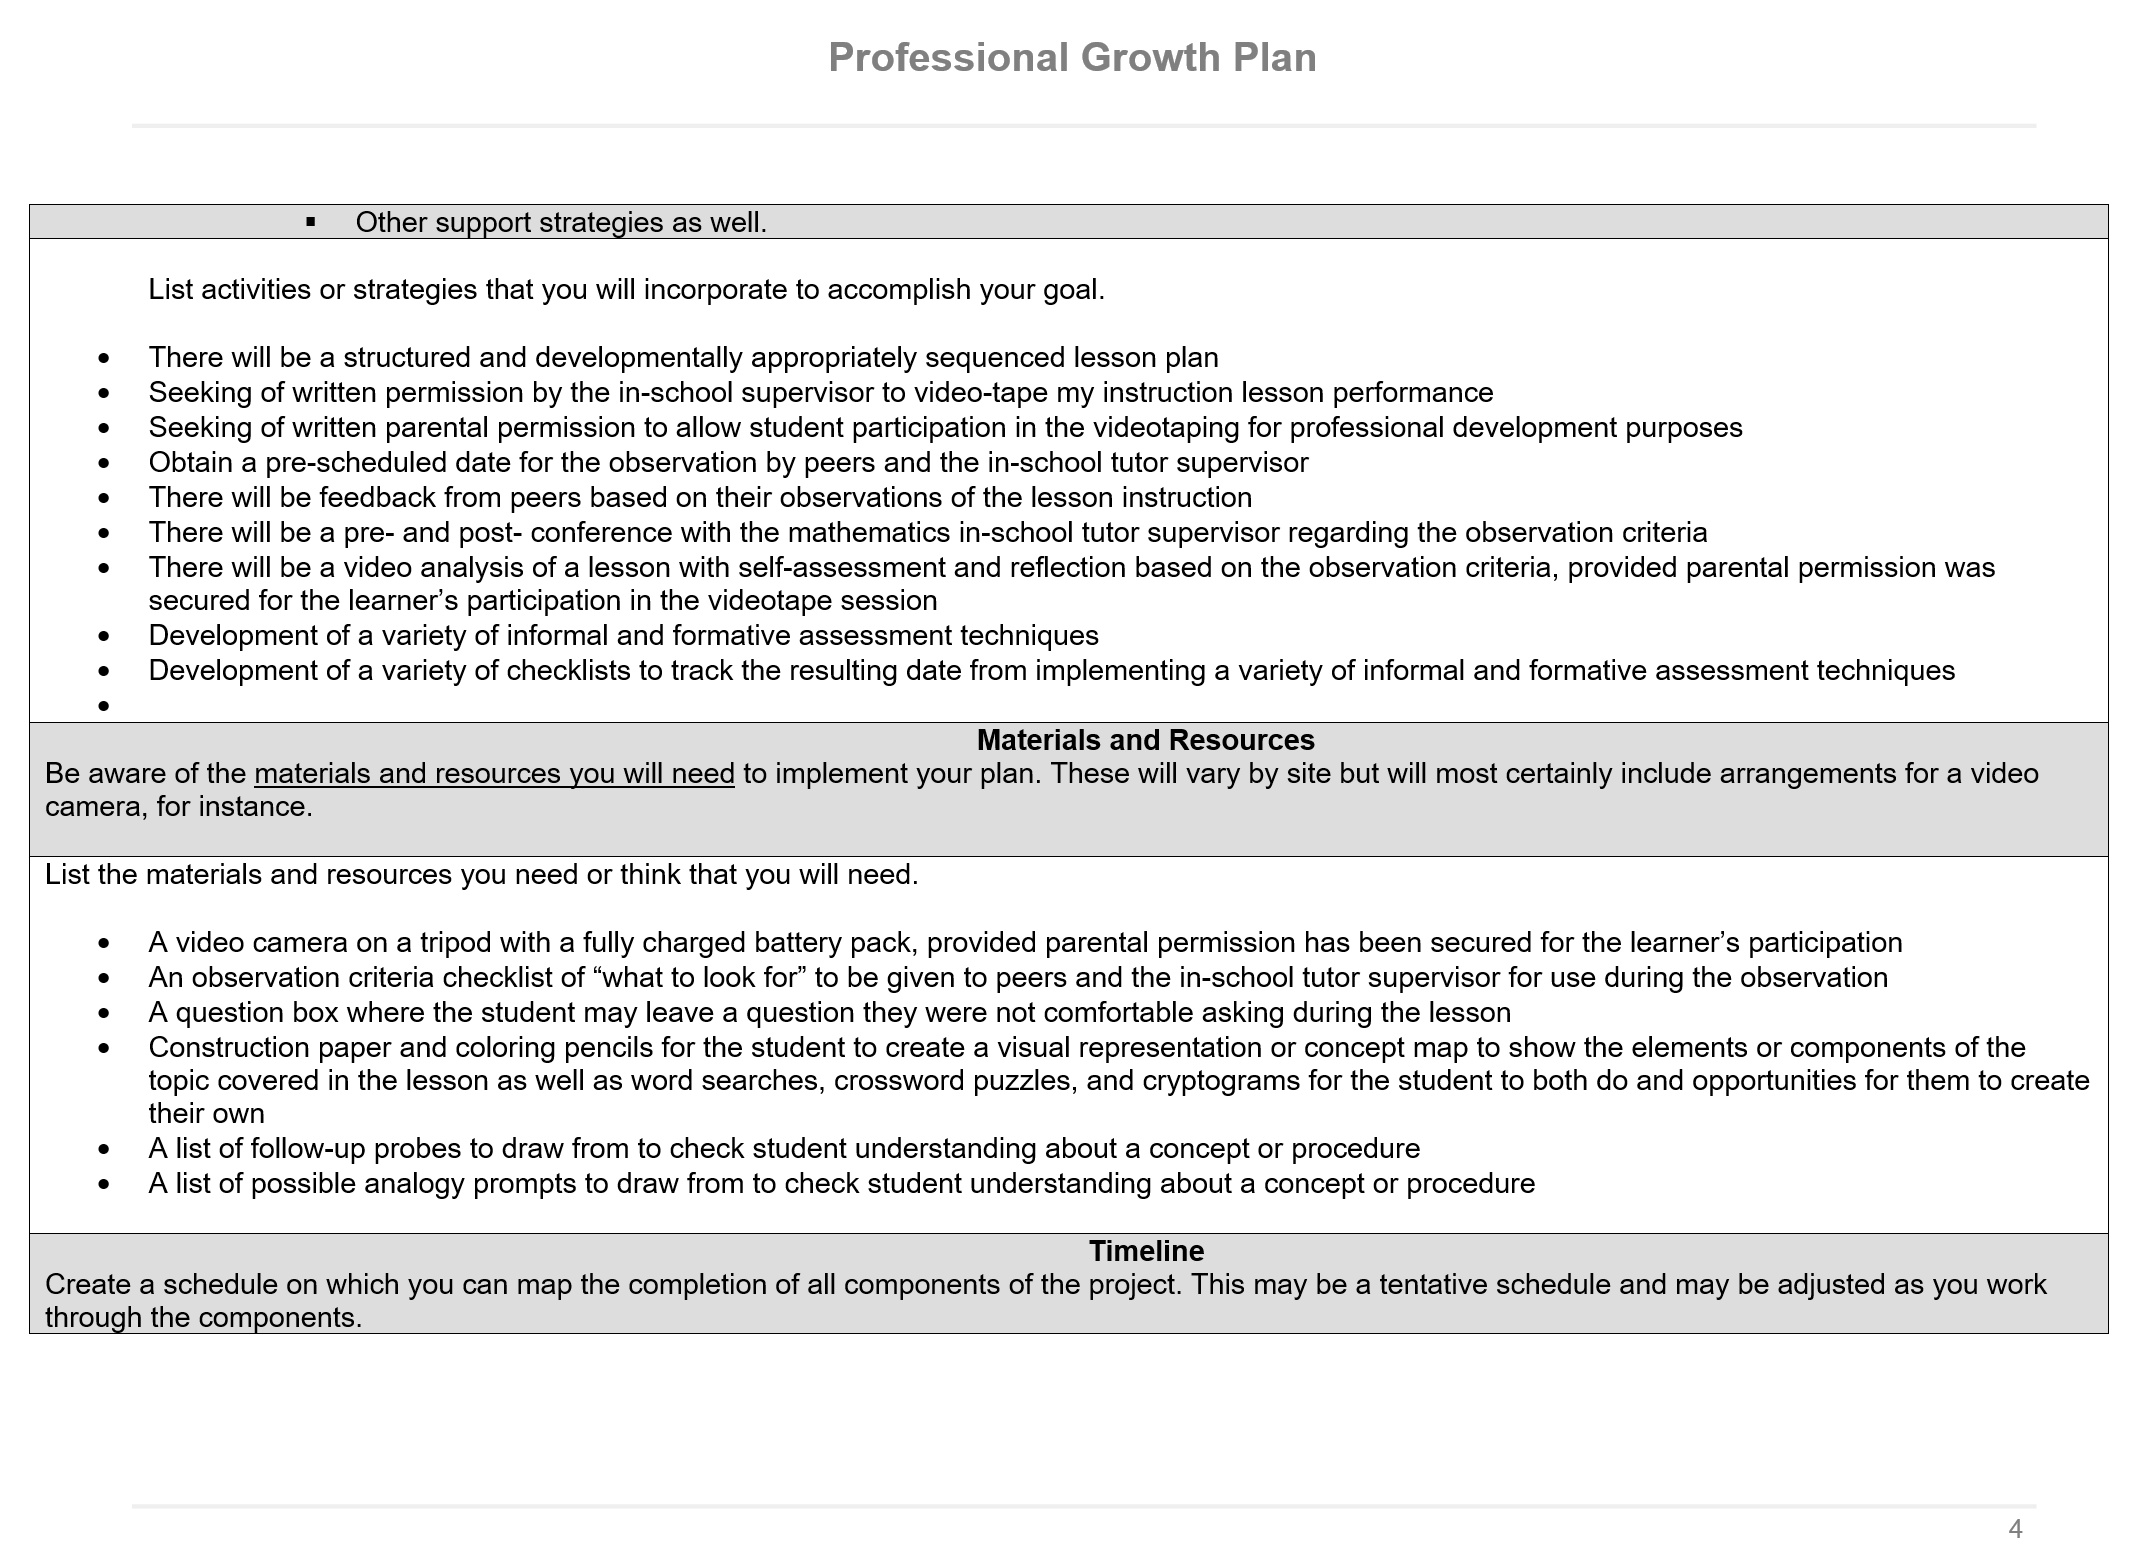 professional growth plan p 4 of 7